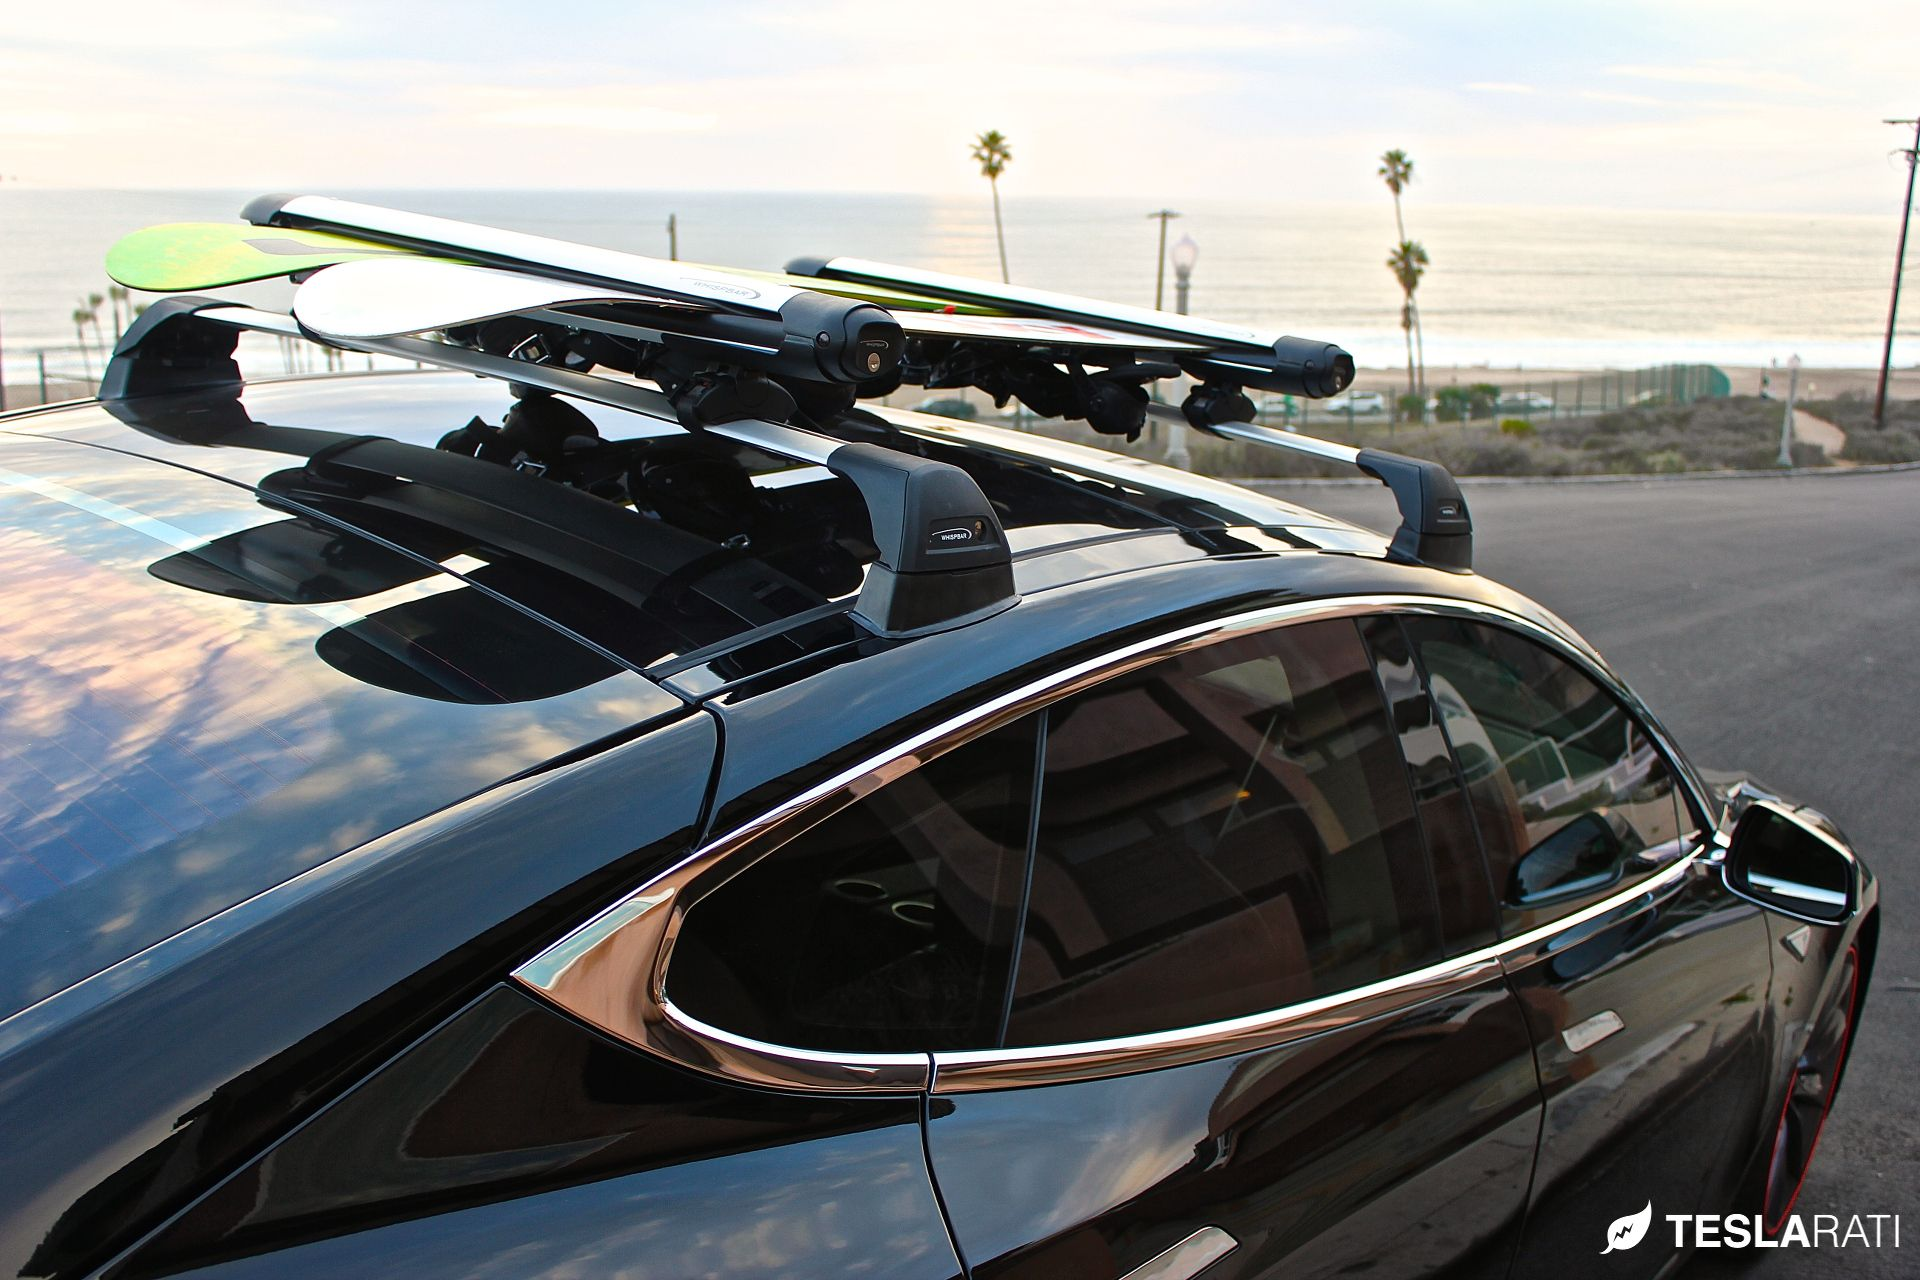 Tesla Model S Roof Rack System Whispbar Review In 2020 Tesla Model S Roof Rack Tesla Model